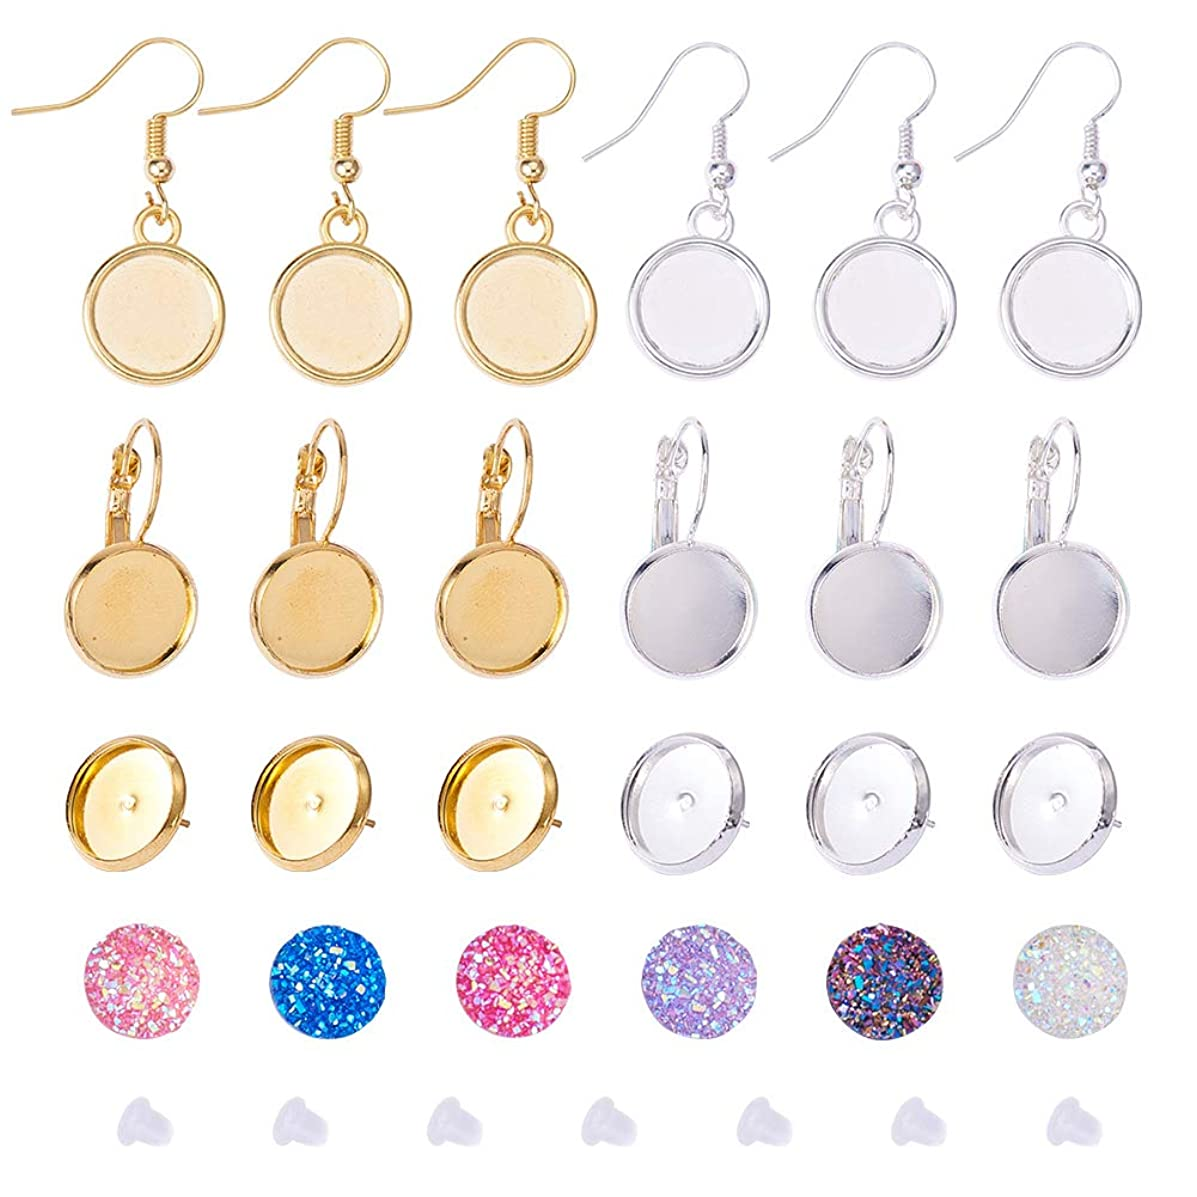 PH PandaHall 8pcs Brass Earring Wire Hooks with Blank Pendant Trays, 8pcs Lever Back Hoop, 8pcs Ear Stud, with 36pcs 12mm Imitation Druzy Agate Resin Cabochons & 20pcs Earnuts